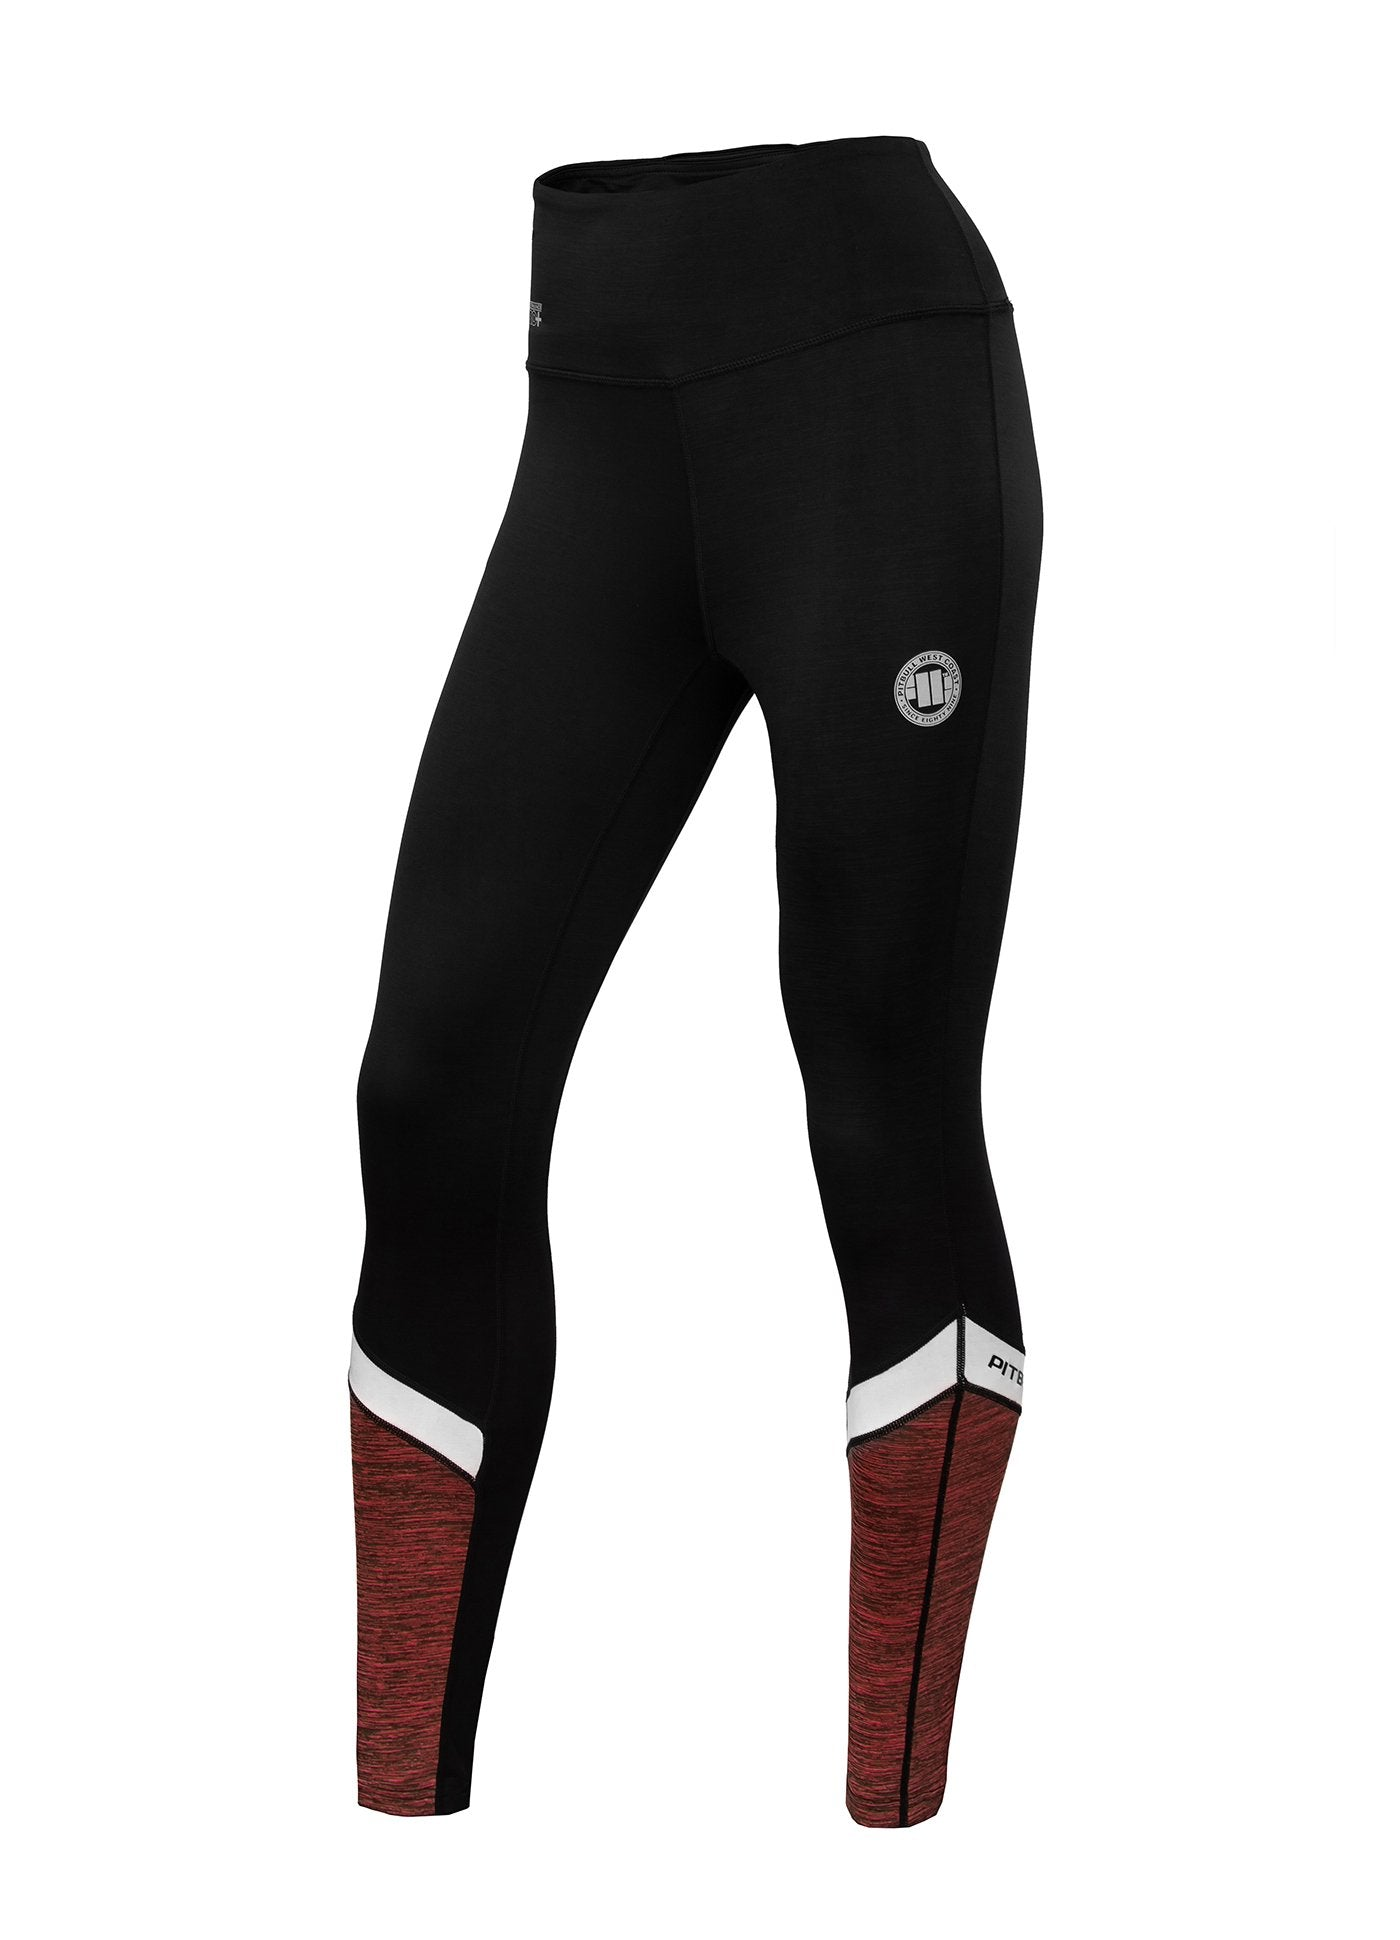 Women's Leggins Compression PRO PLUS MLG Coral Melange - Pitbull West Coast U.S.A.